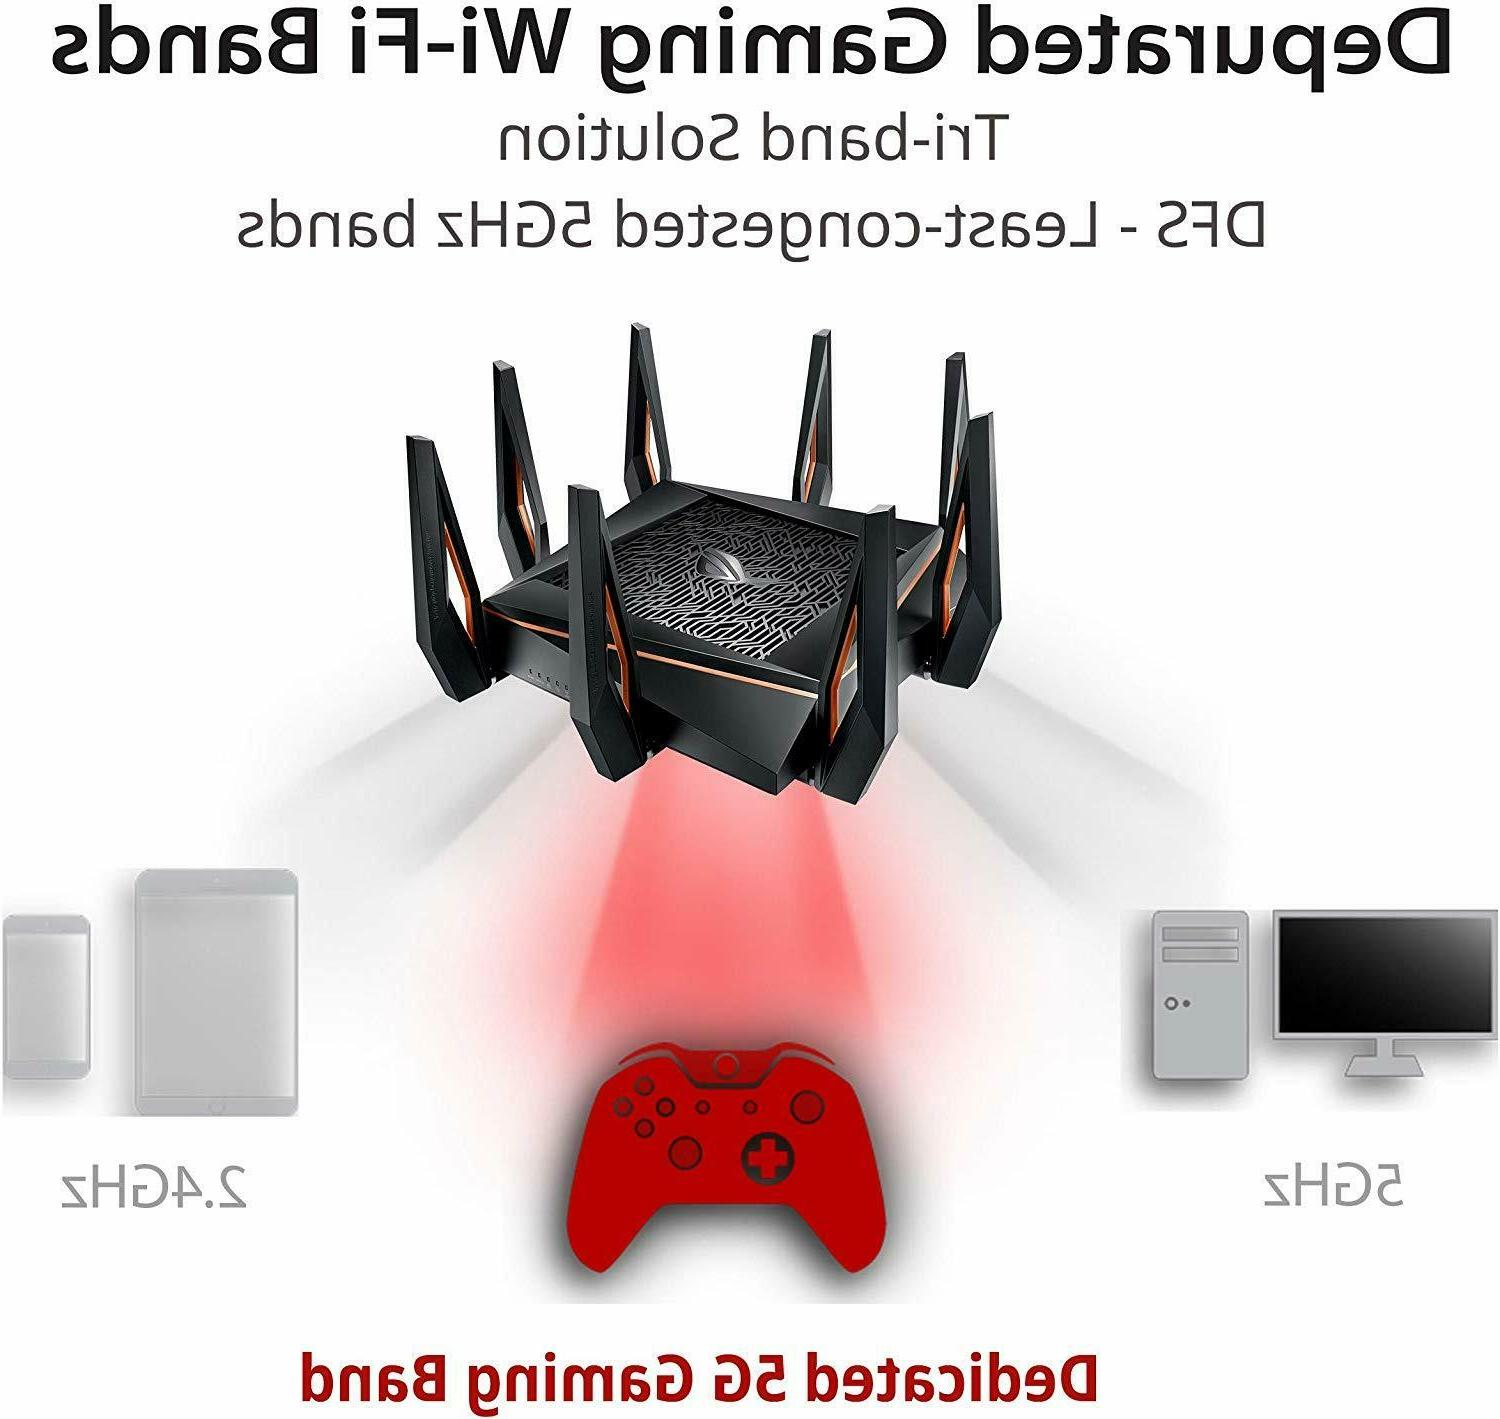 Asus Tri-Band Gigabit WiFi Router New!!!